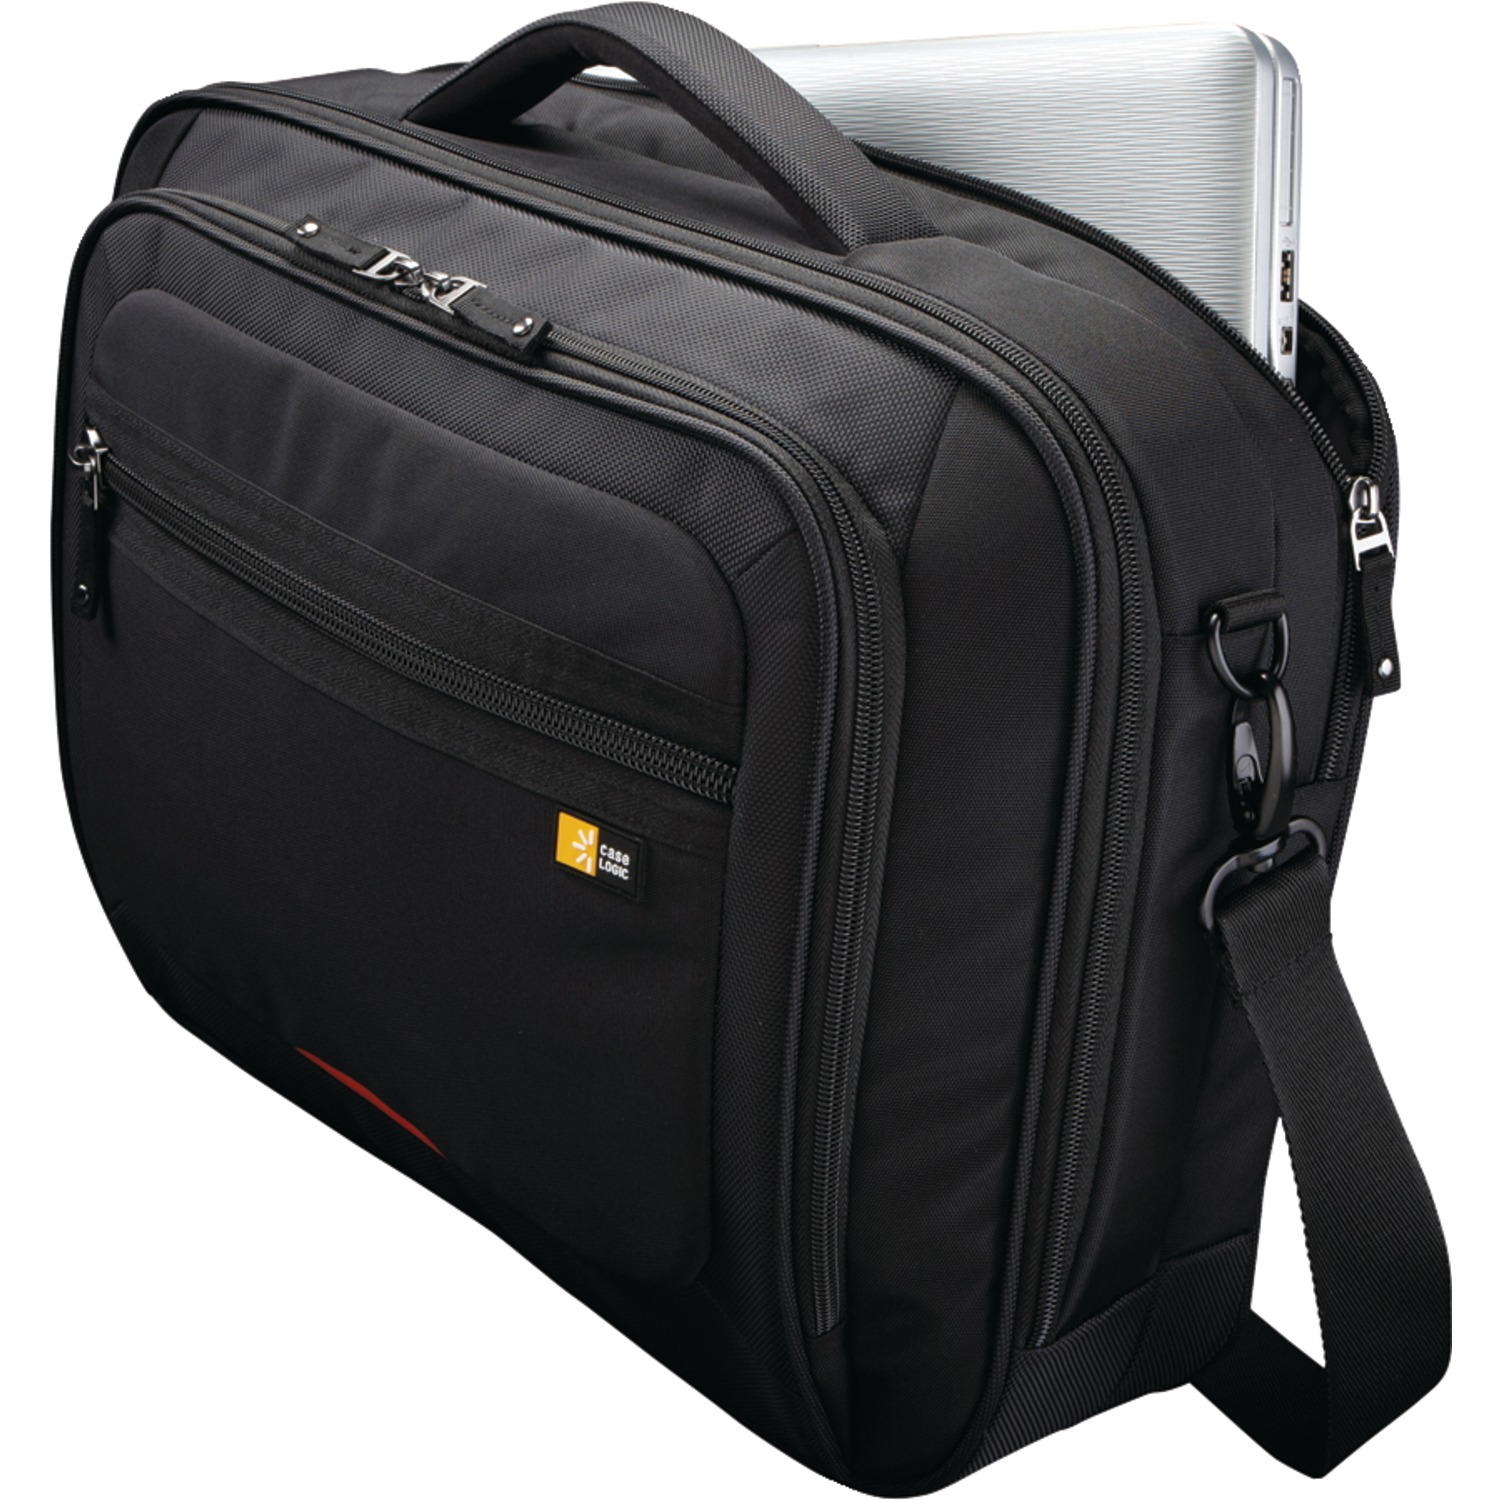 "CASE LOGIC ZLC-216 16"" Professional Notebook & Ipad Briefcase by Case Logic"